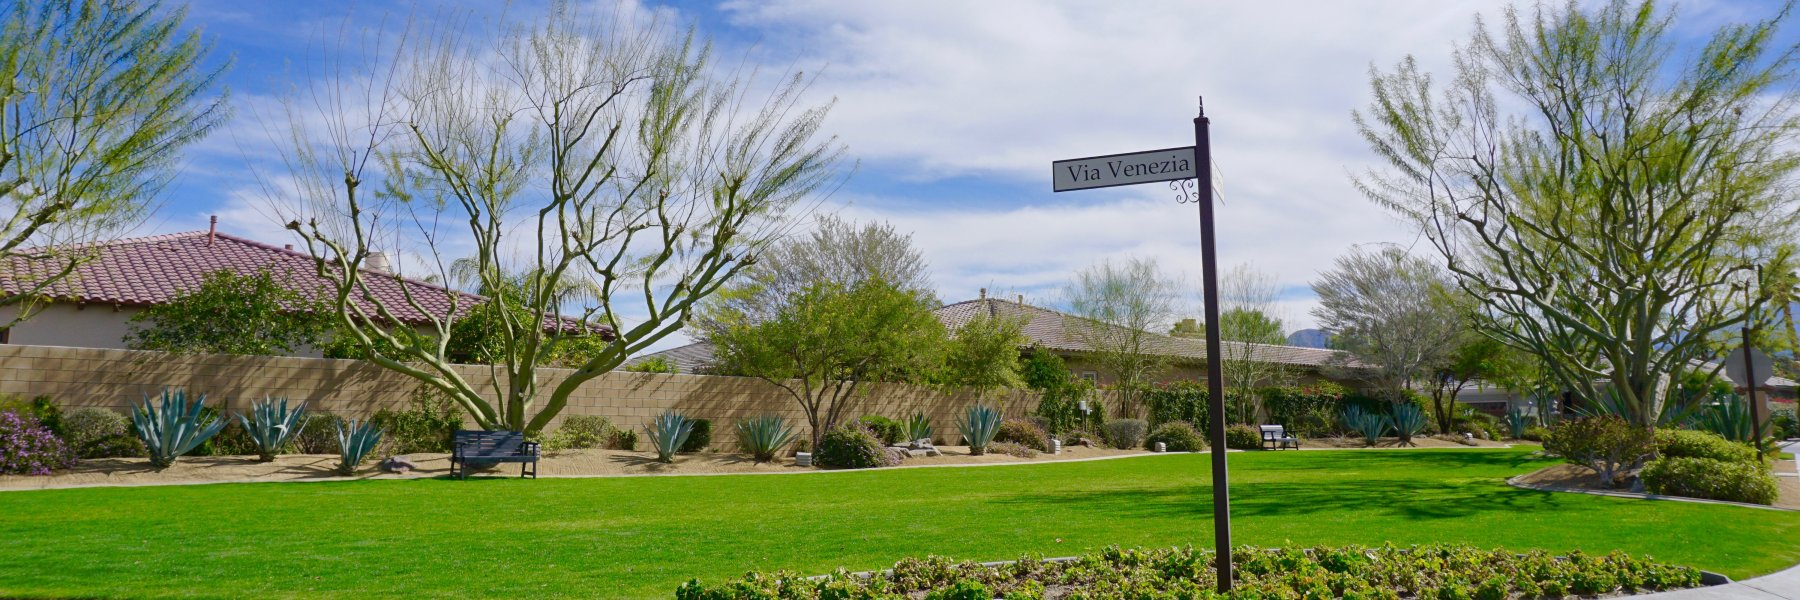 Venezia is a community of homes in Palm Desert California